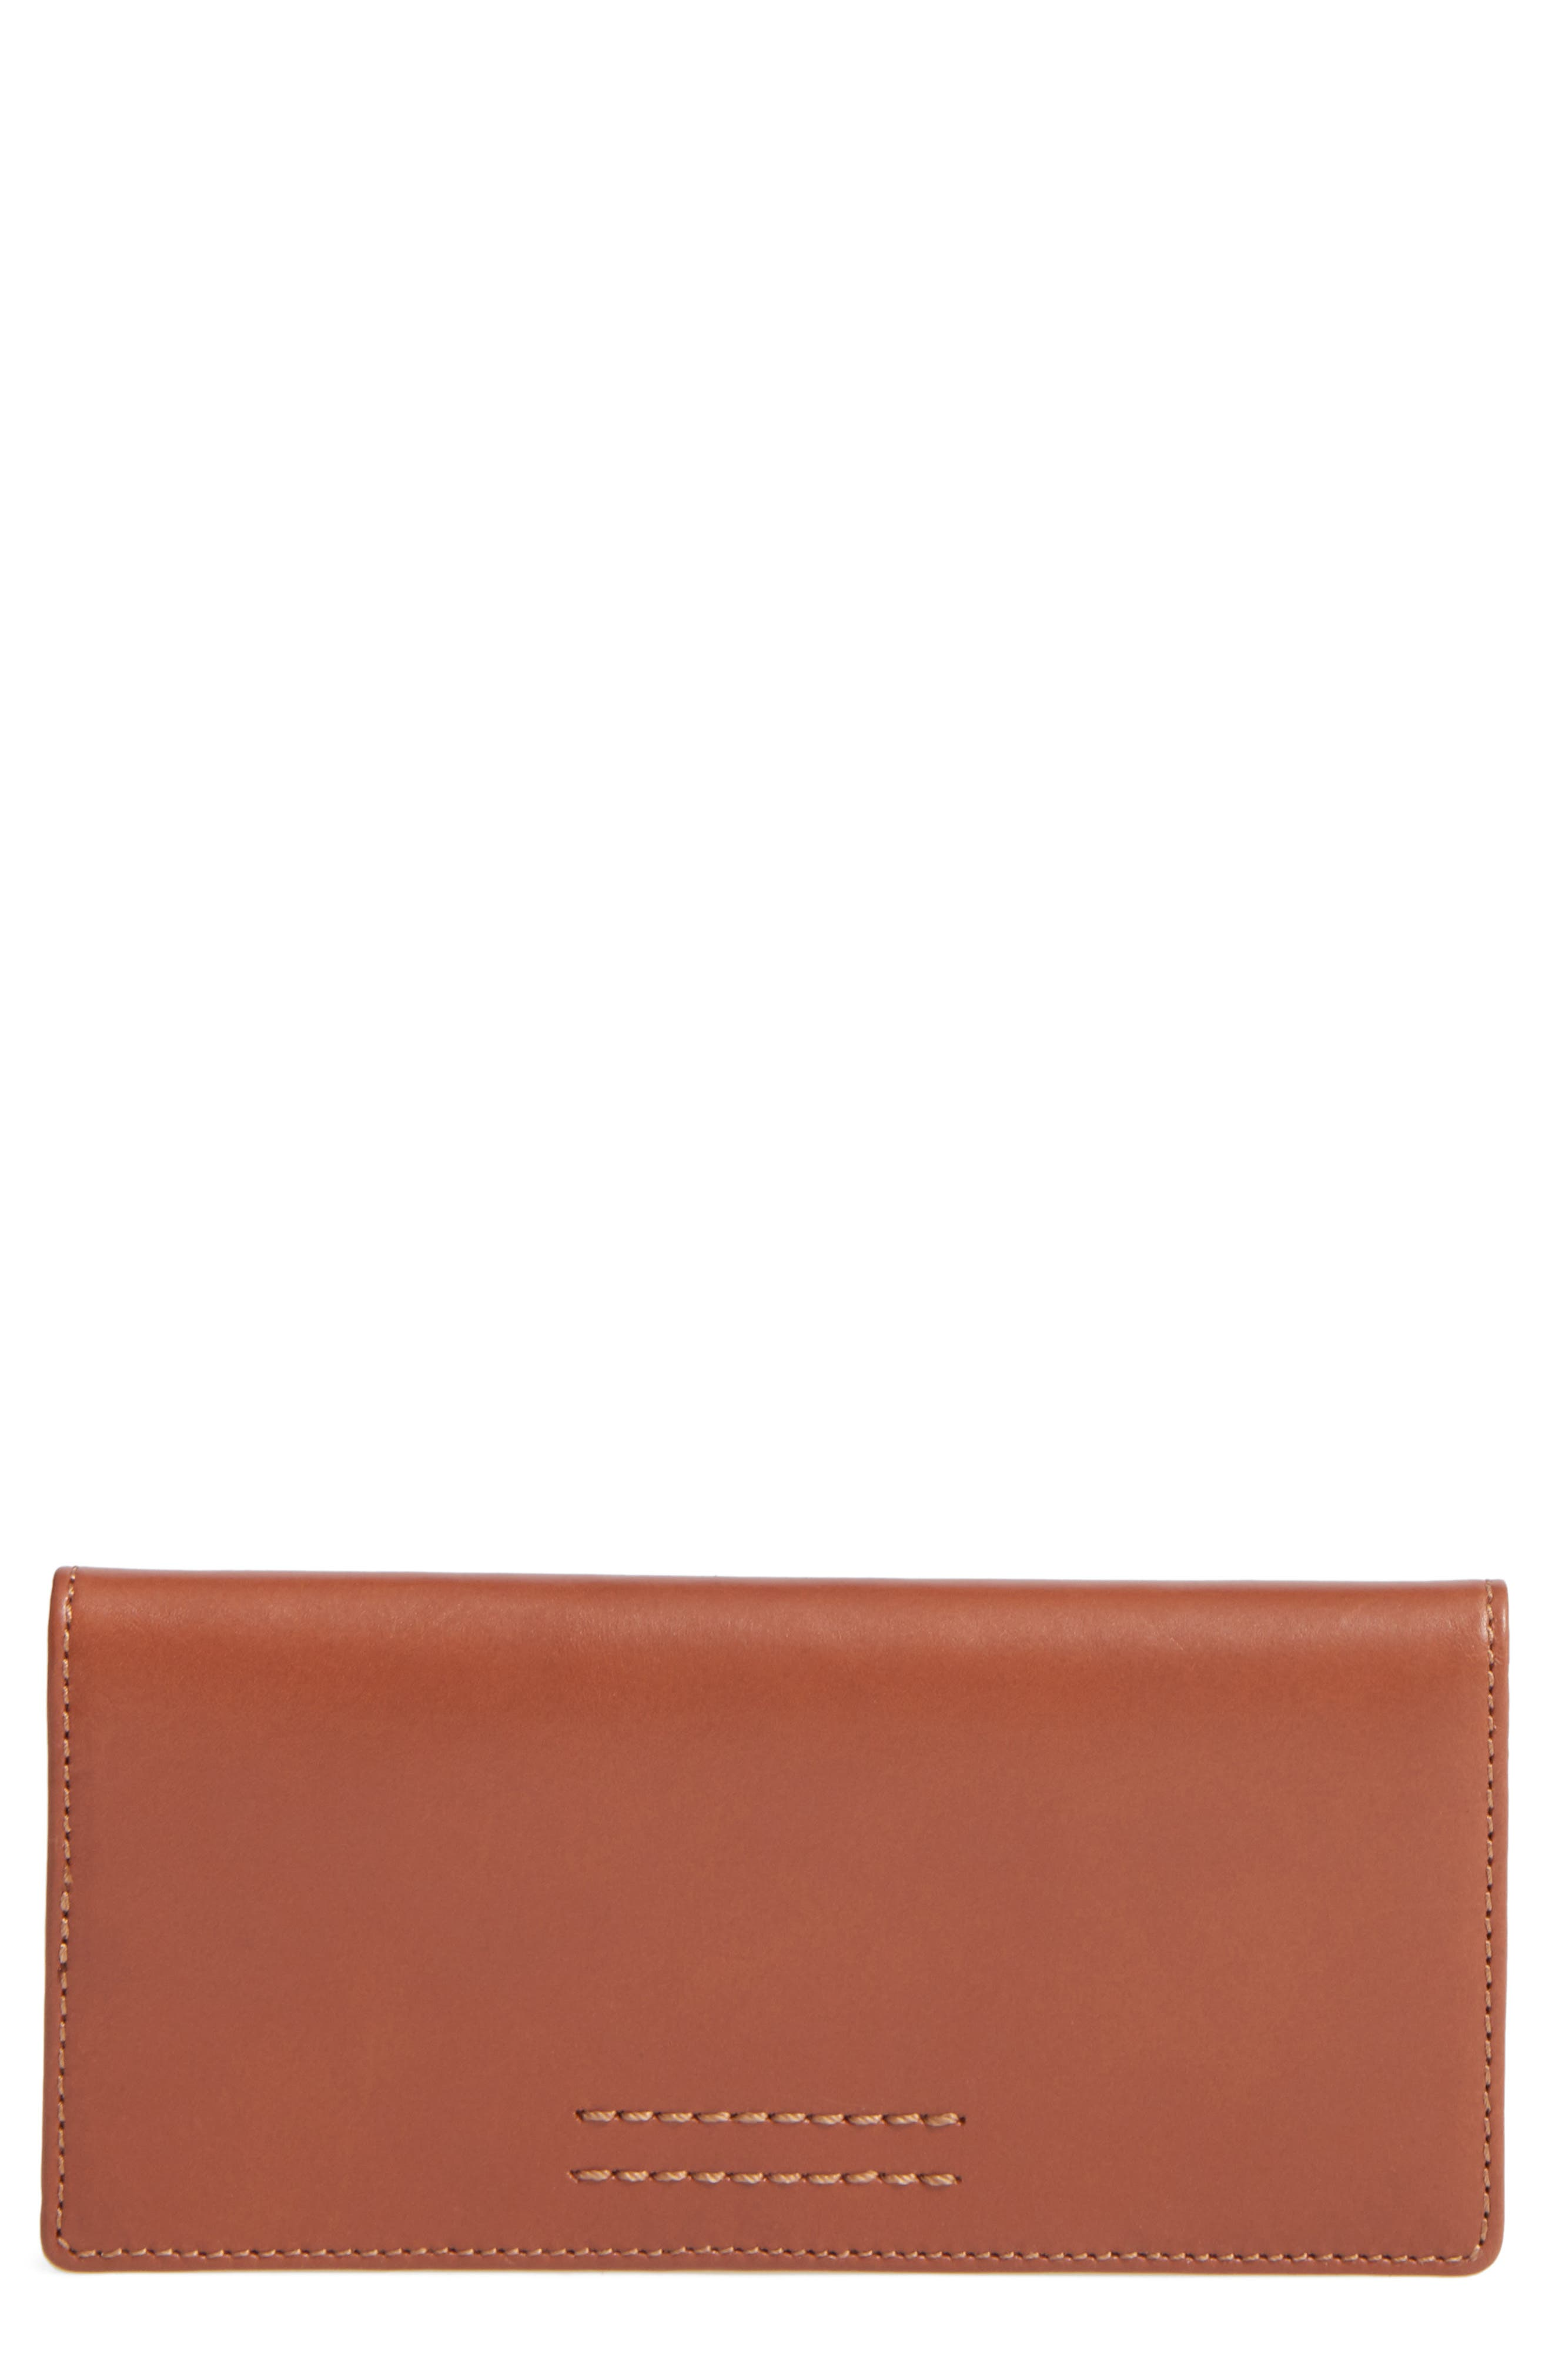 Alternate Image 1 Selected - Frye Harness Leather Continental Wallet